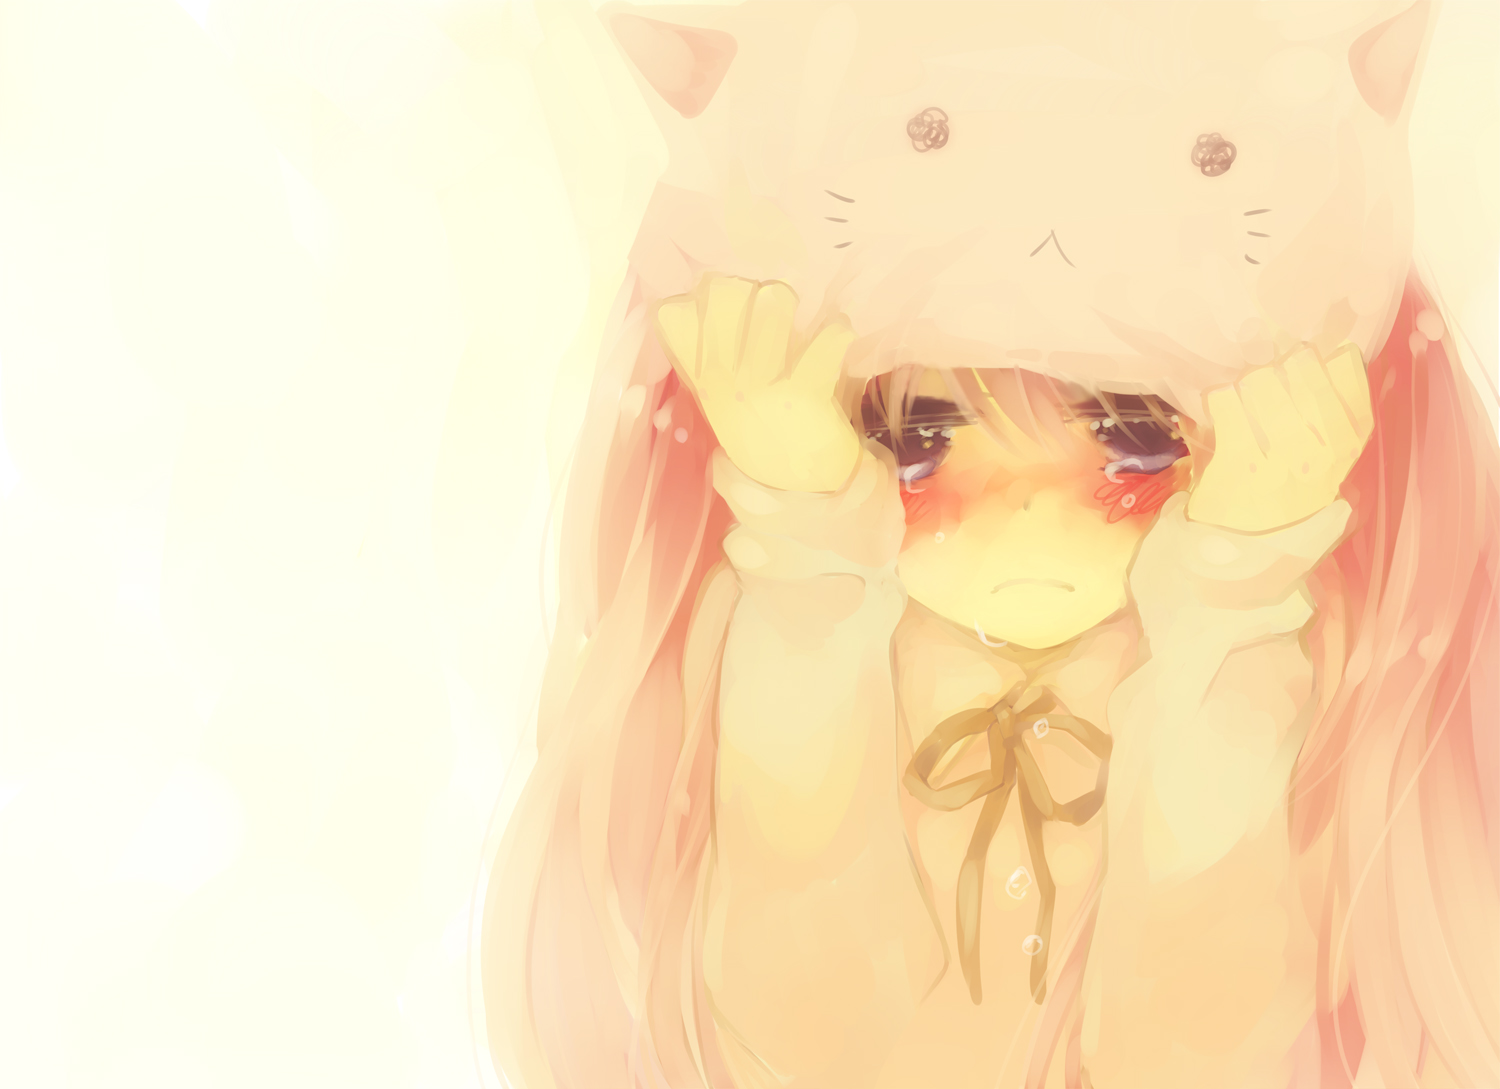 blue_eyes blush crying long_hair megurine_luka pink_hair ribbons toeto vocaloid white